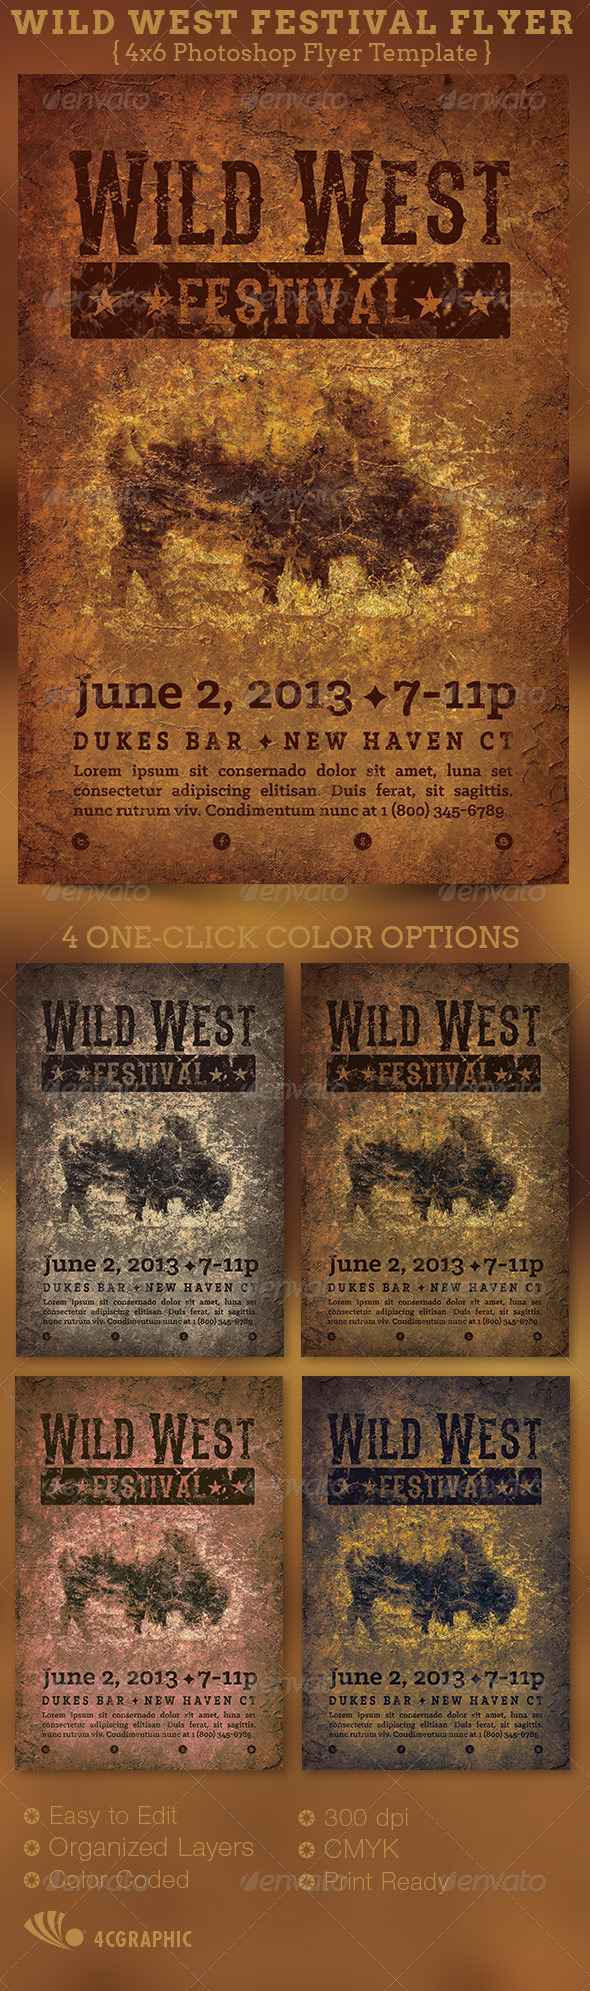 GraphicRiver Wild West Festival Flyer Template 5542295